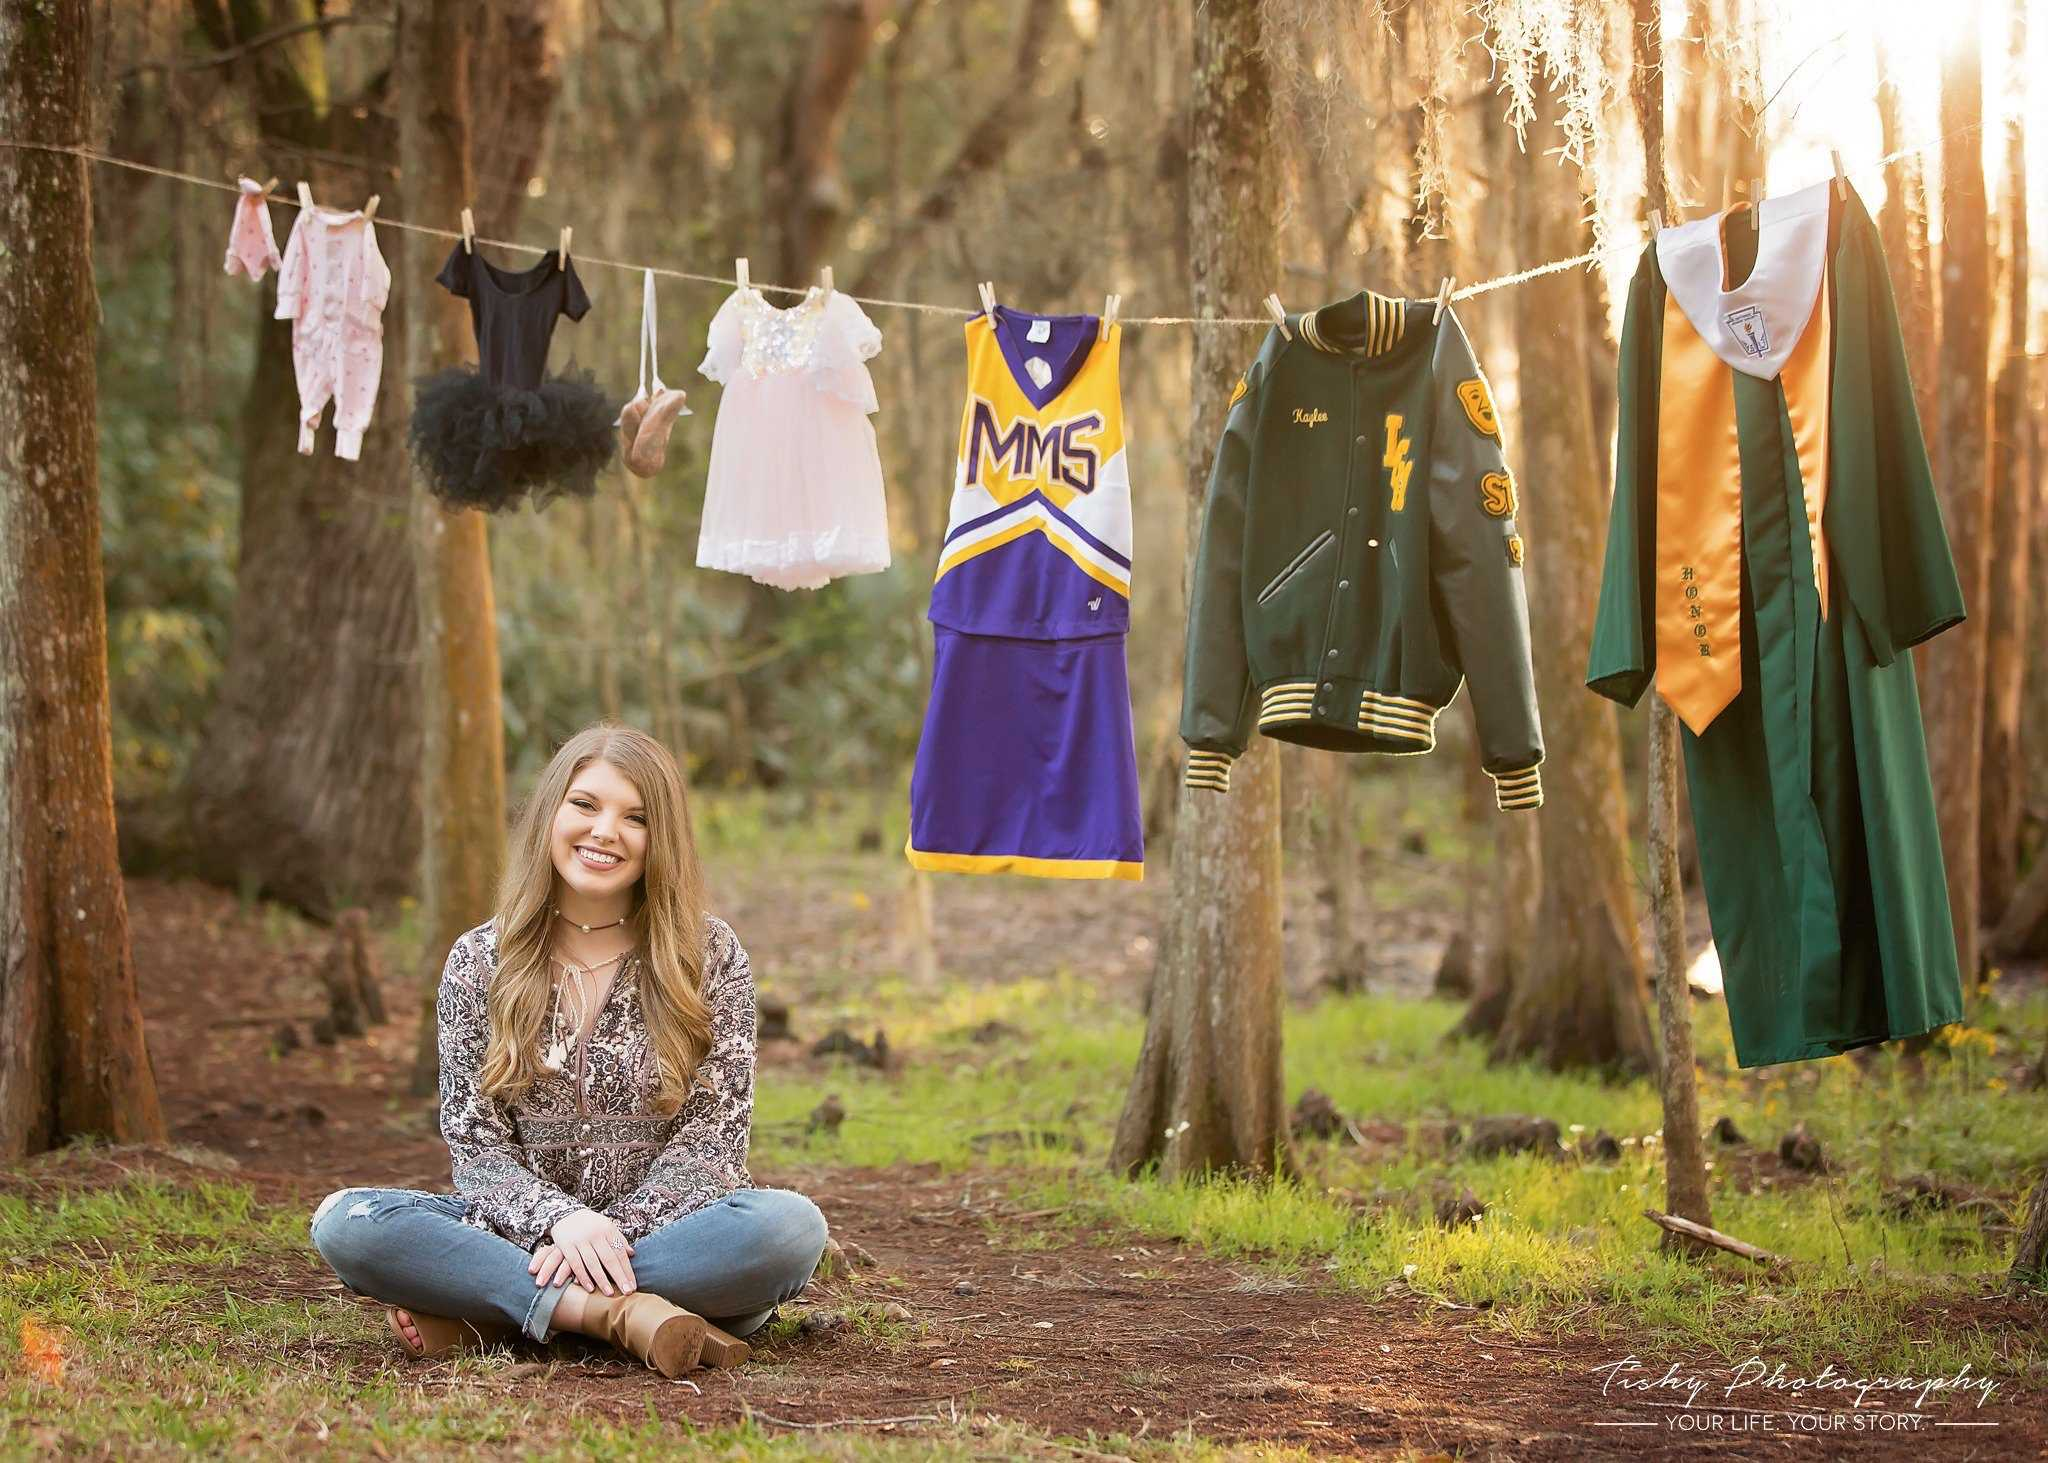 Senior Kaylee Pattillo captures all of her special life moments in her senior pictures.